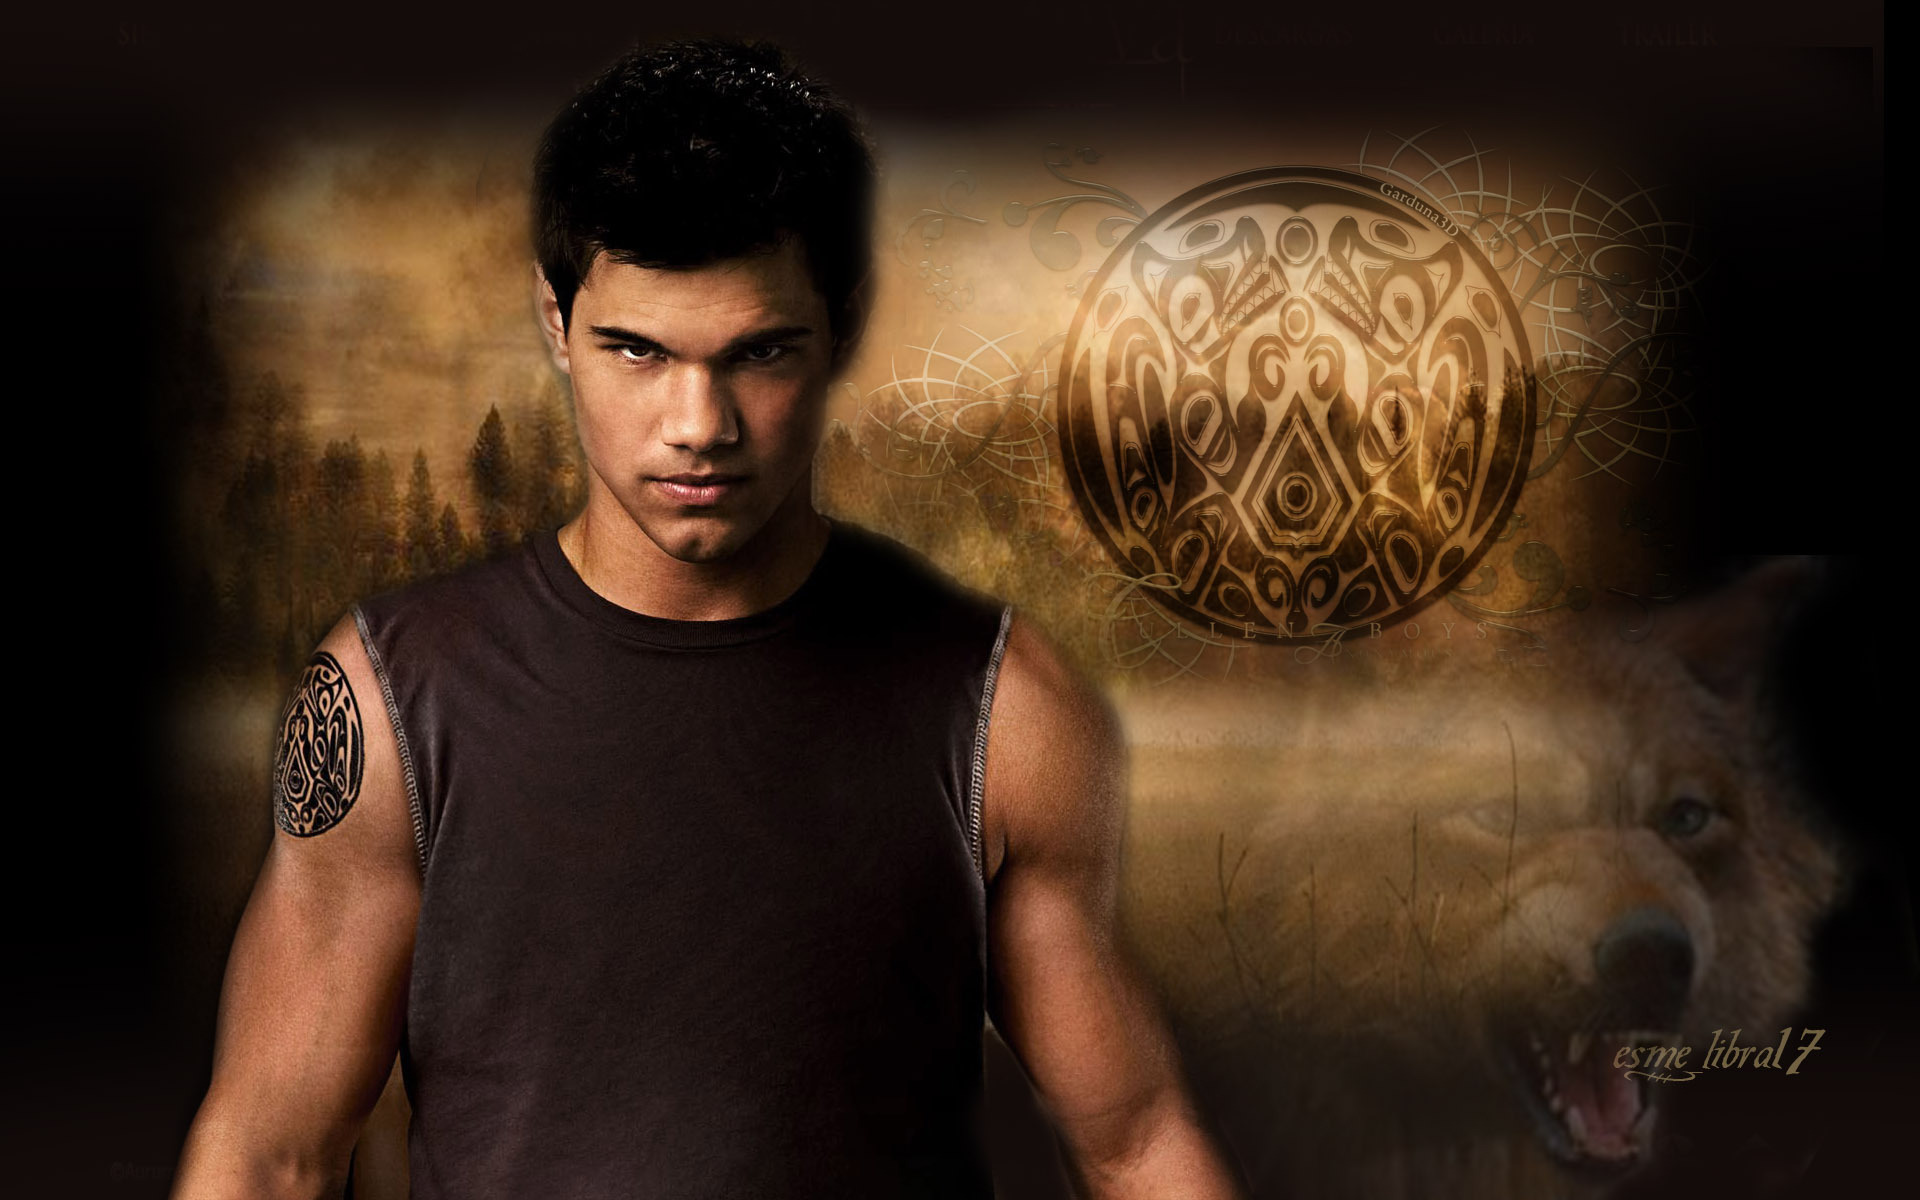 jacob black   twilight Crepsculo Wallpaper 8395141 1920x1200